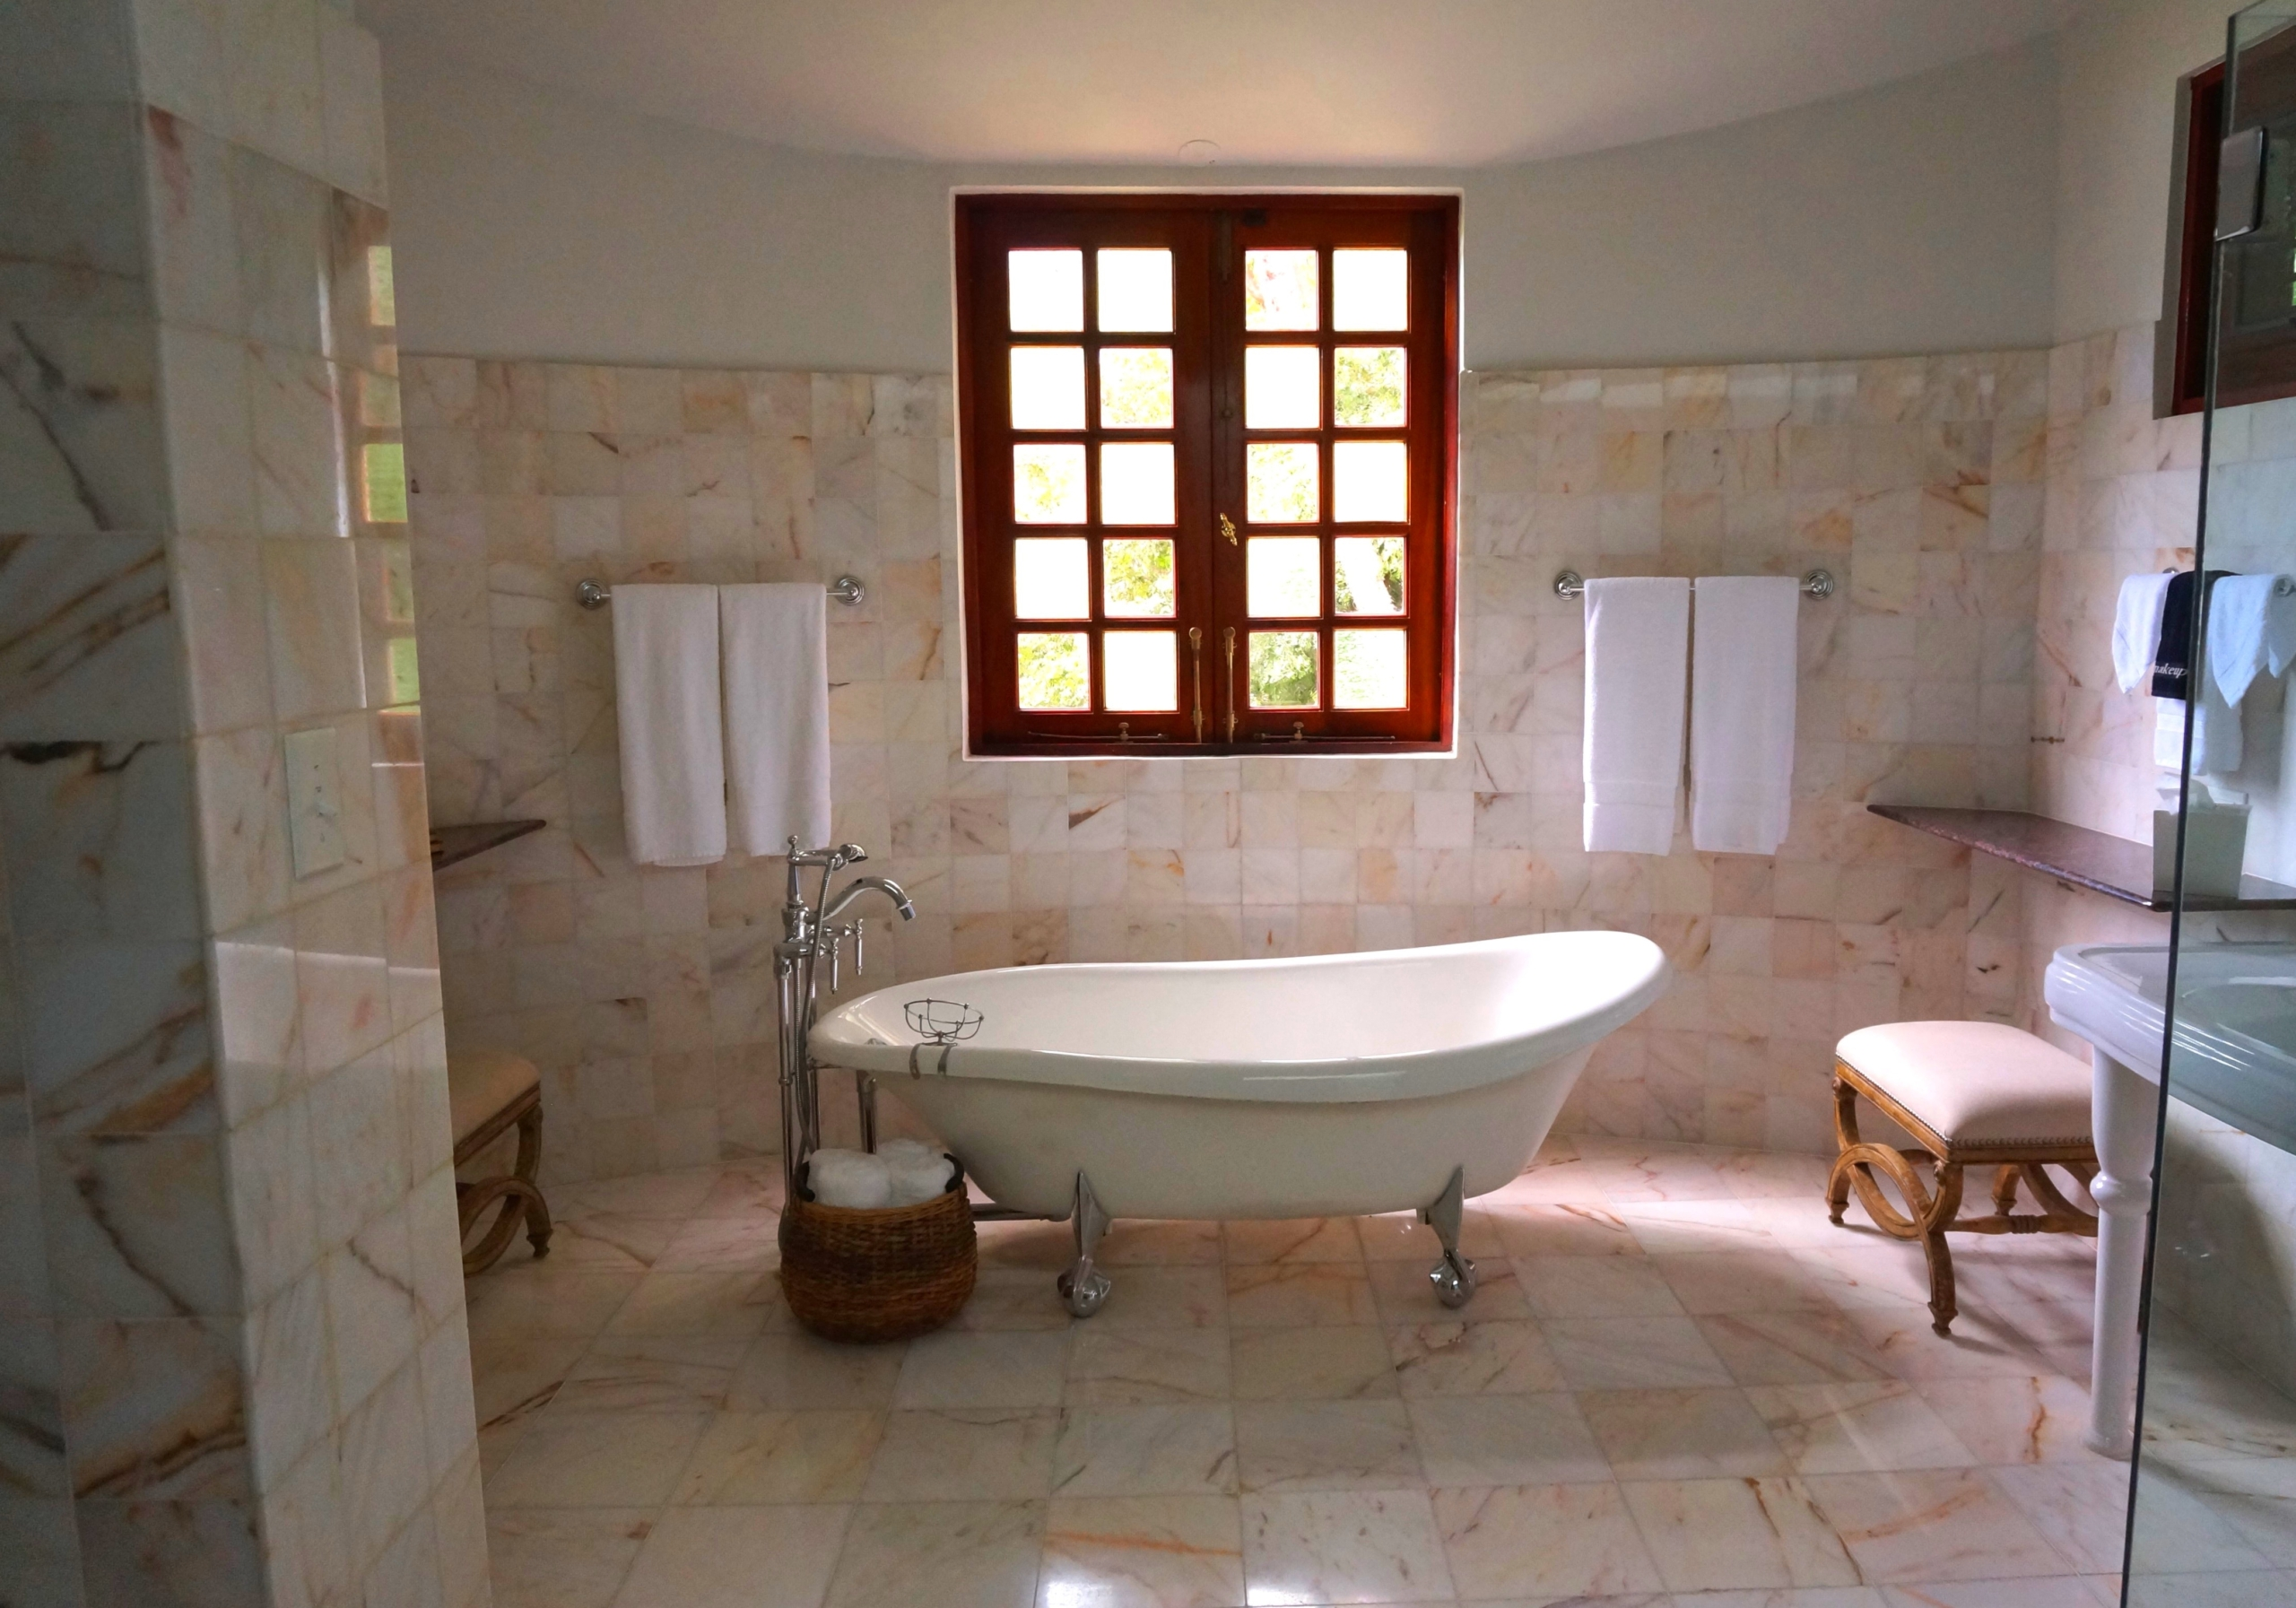 bath bathroom bathtub 105934 - Te proponemos muebles para equipar tu baño